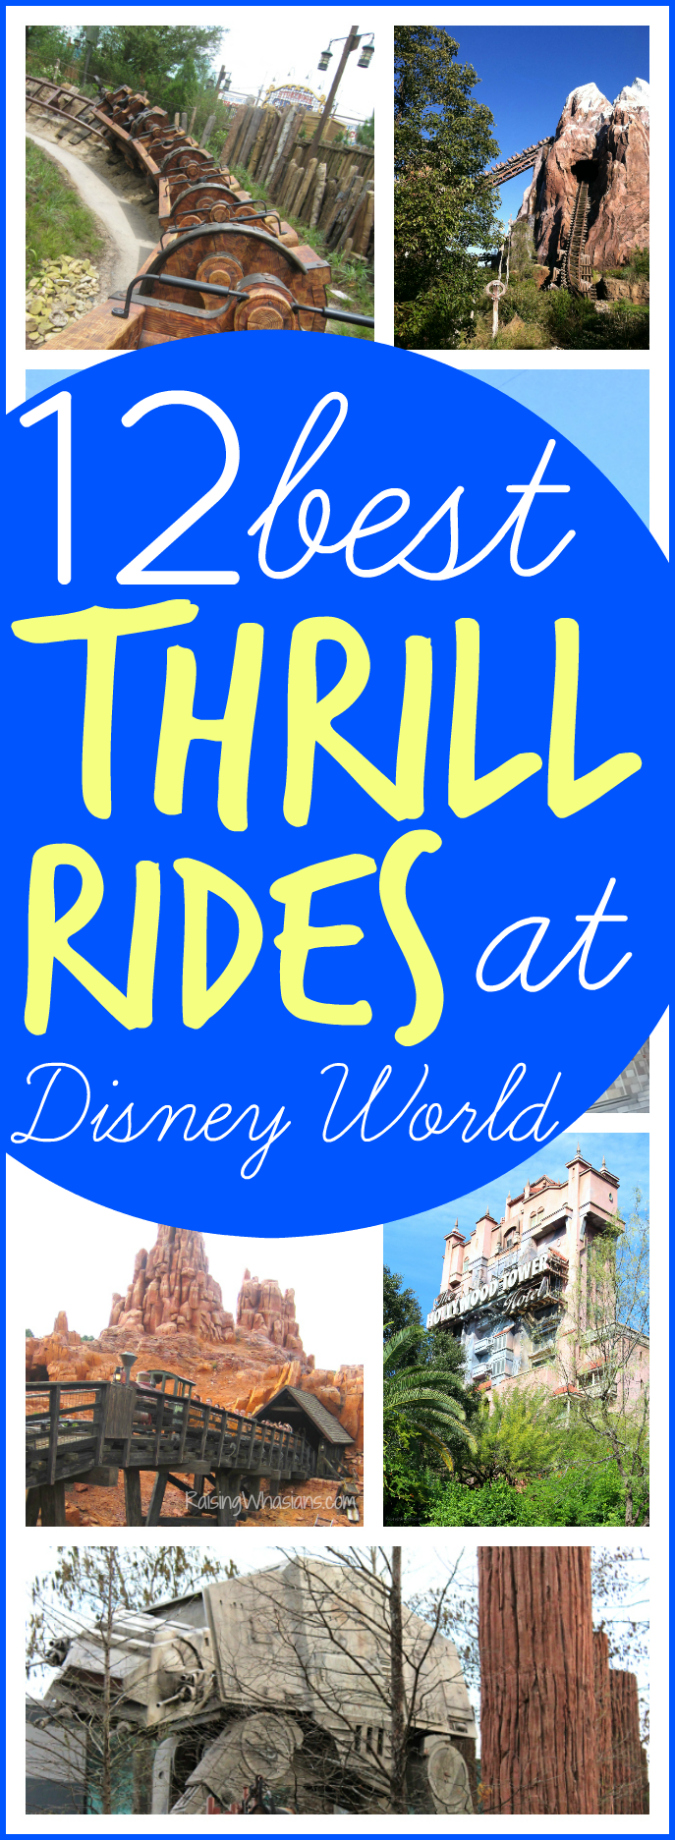 12 best Walt Disney world thrill rides